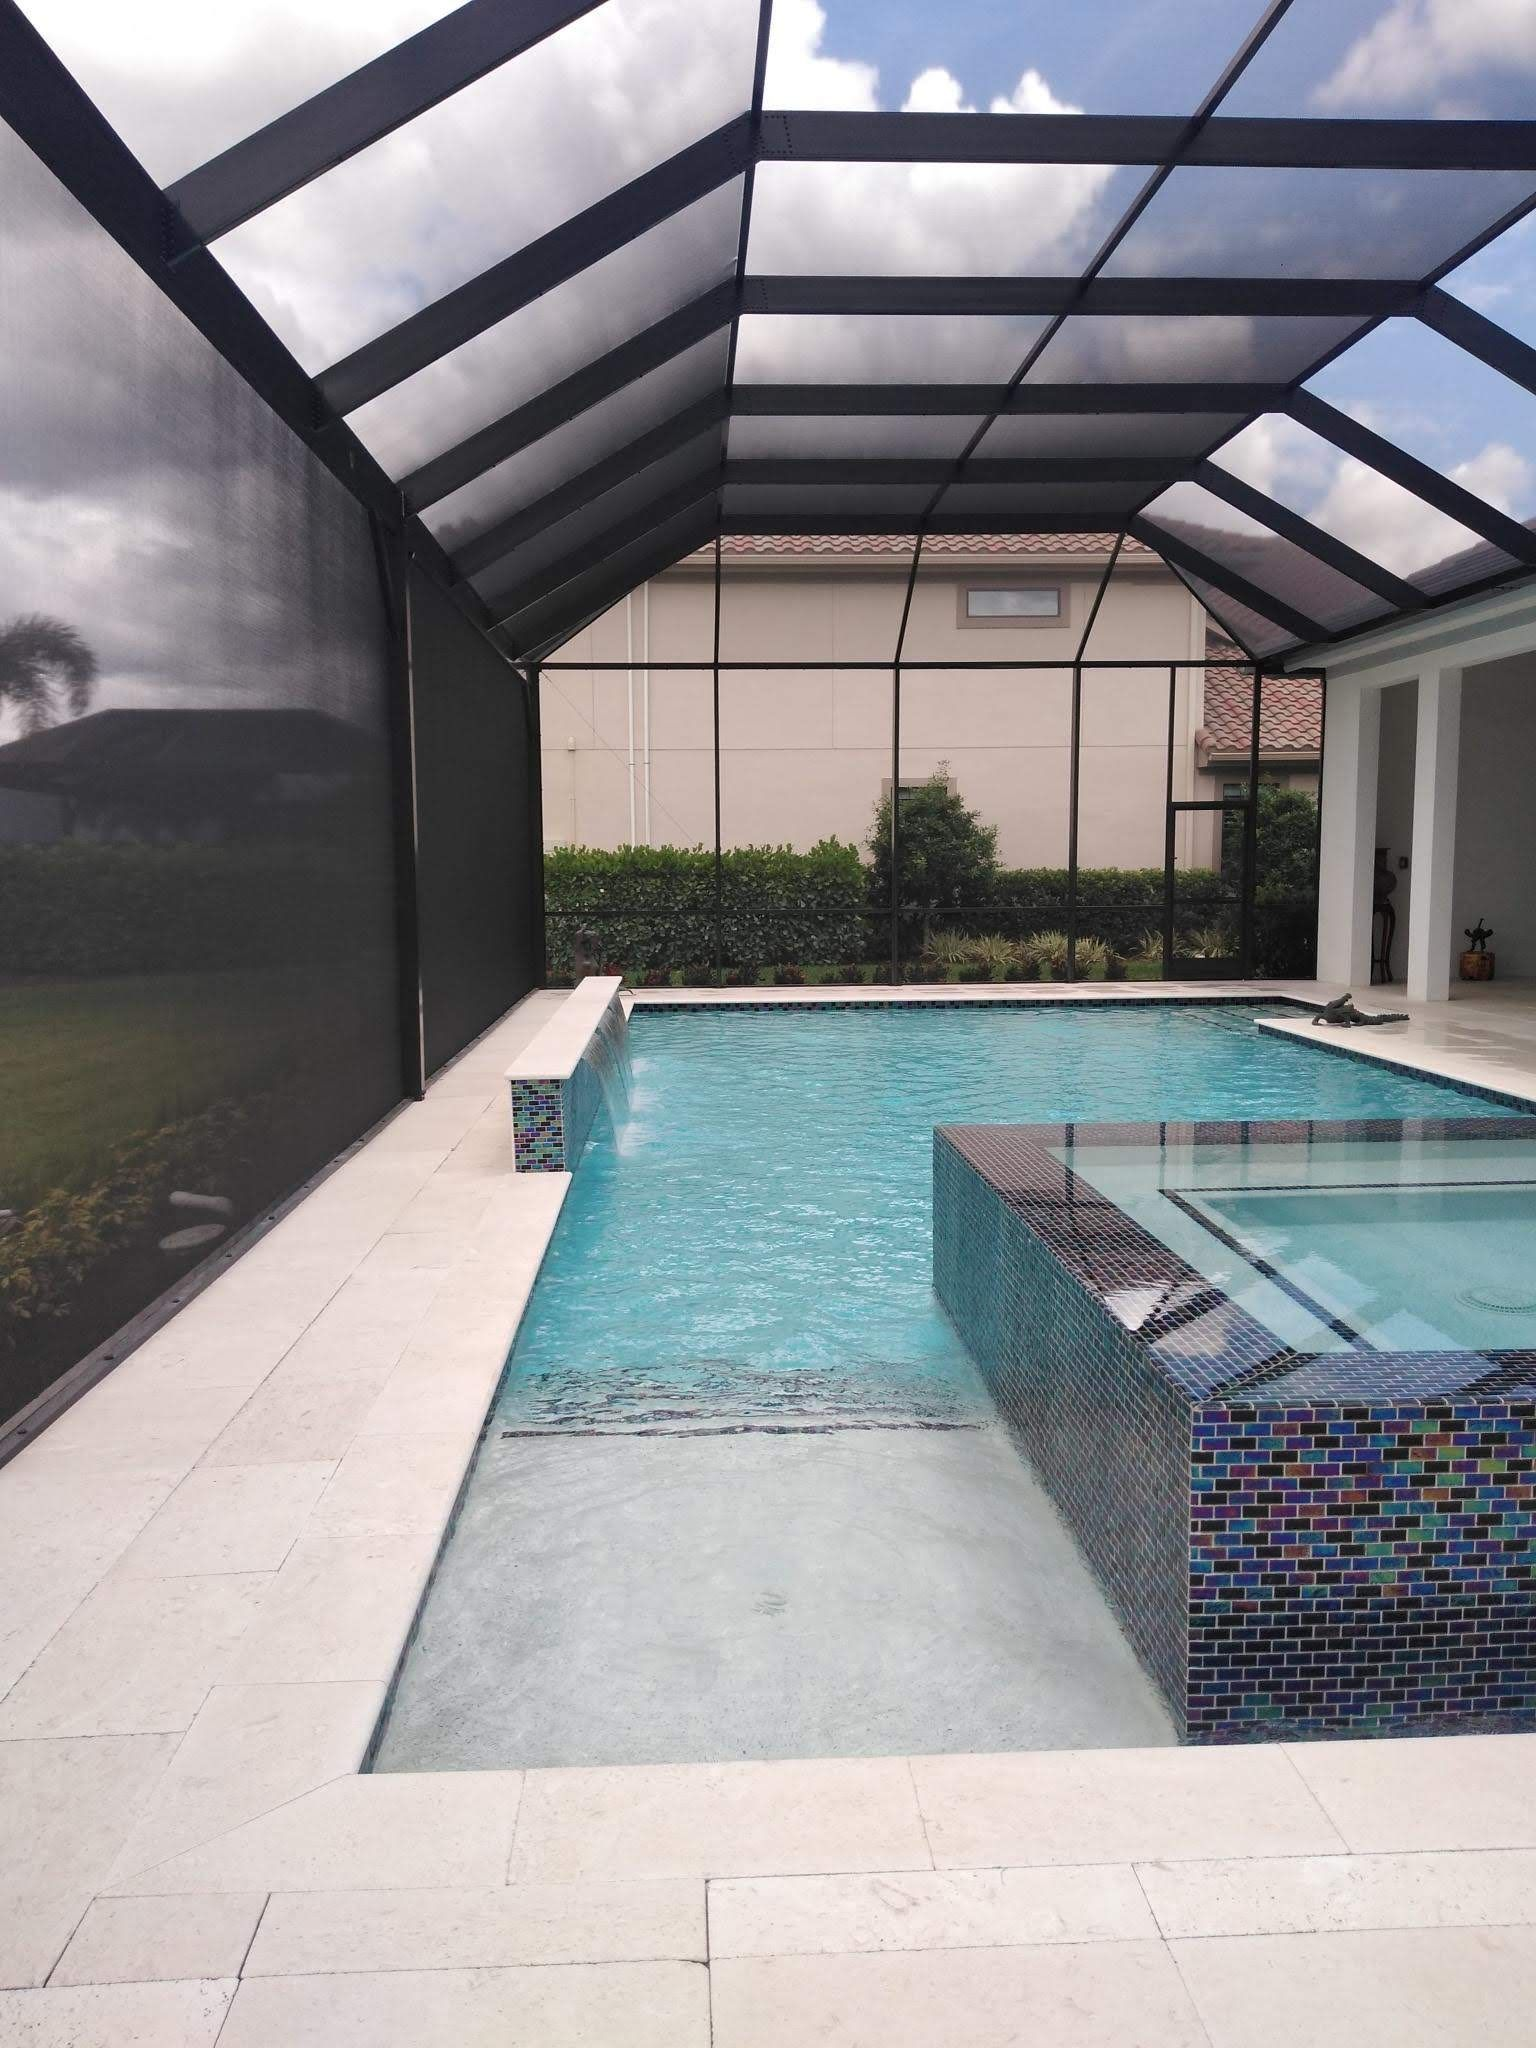 Pool Enclosure By Dreamwork Aluminum Swfl Pool Screen Enclosure Pool Houses Pool